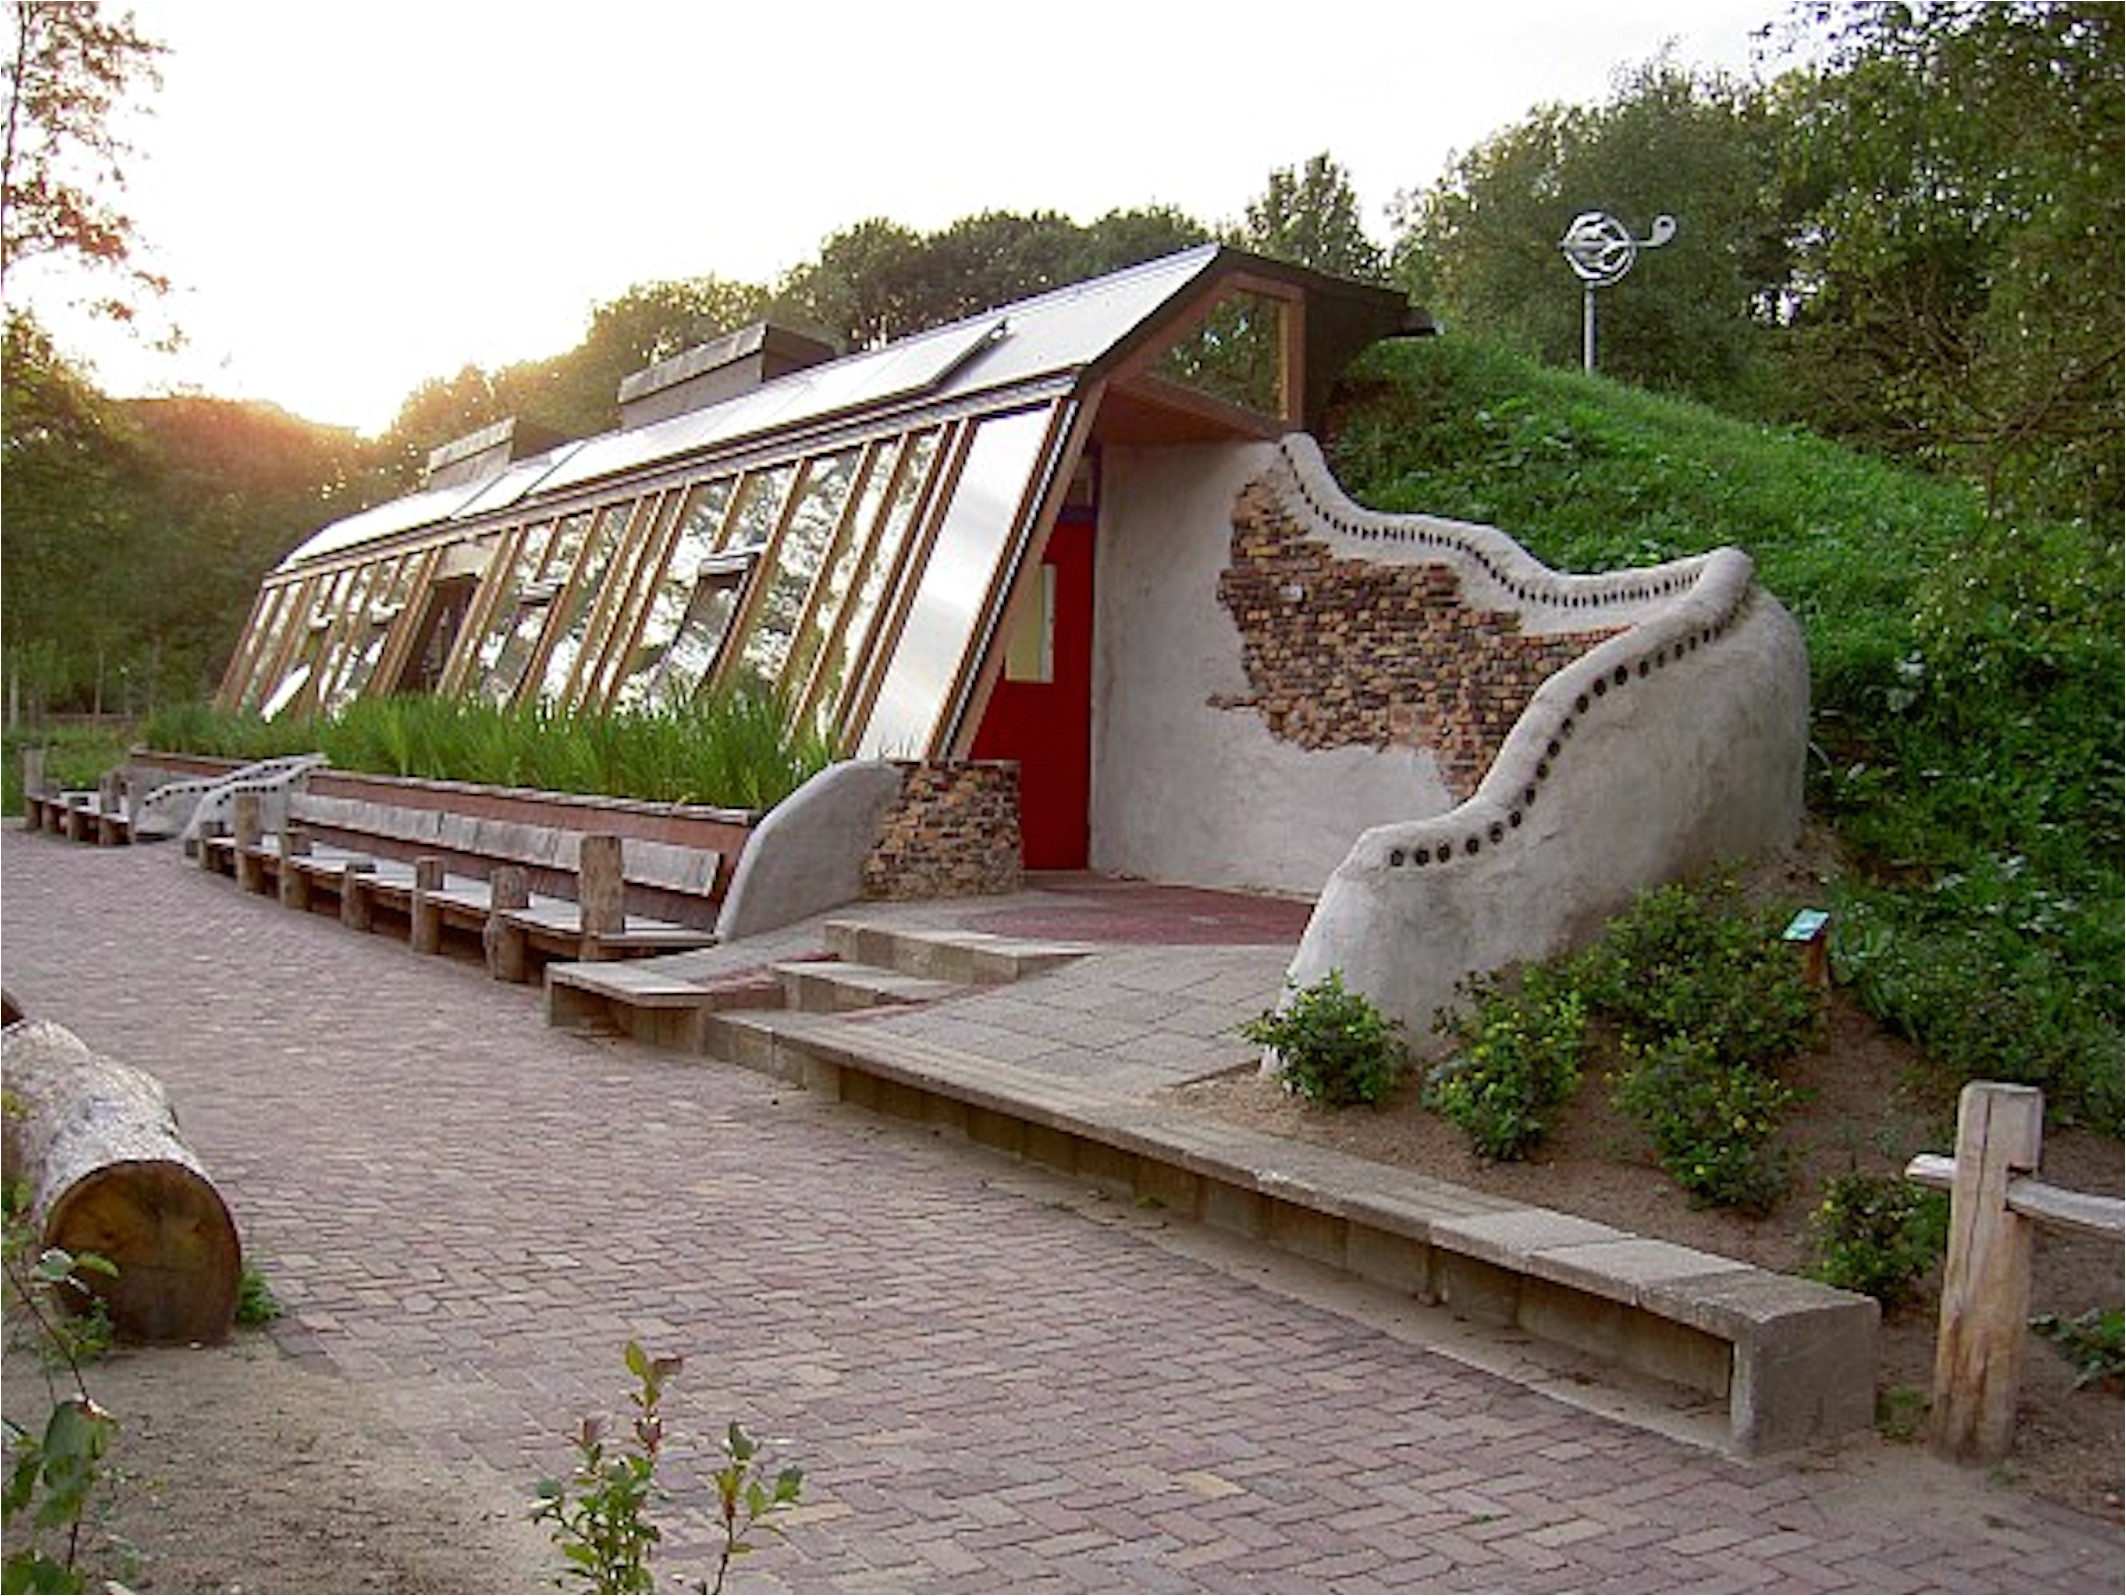 this guy created a step by step guide to creating your own earthship